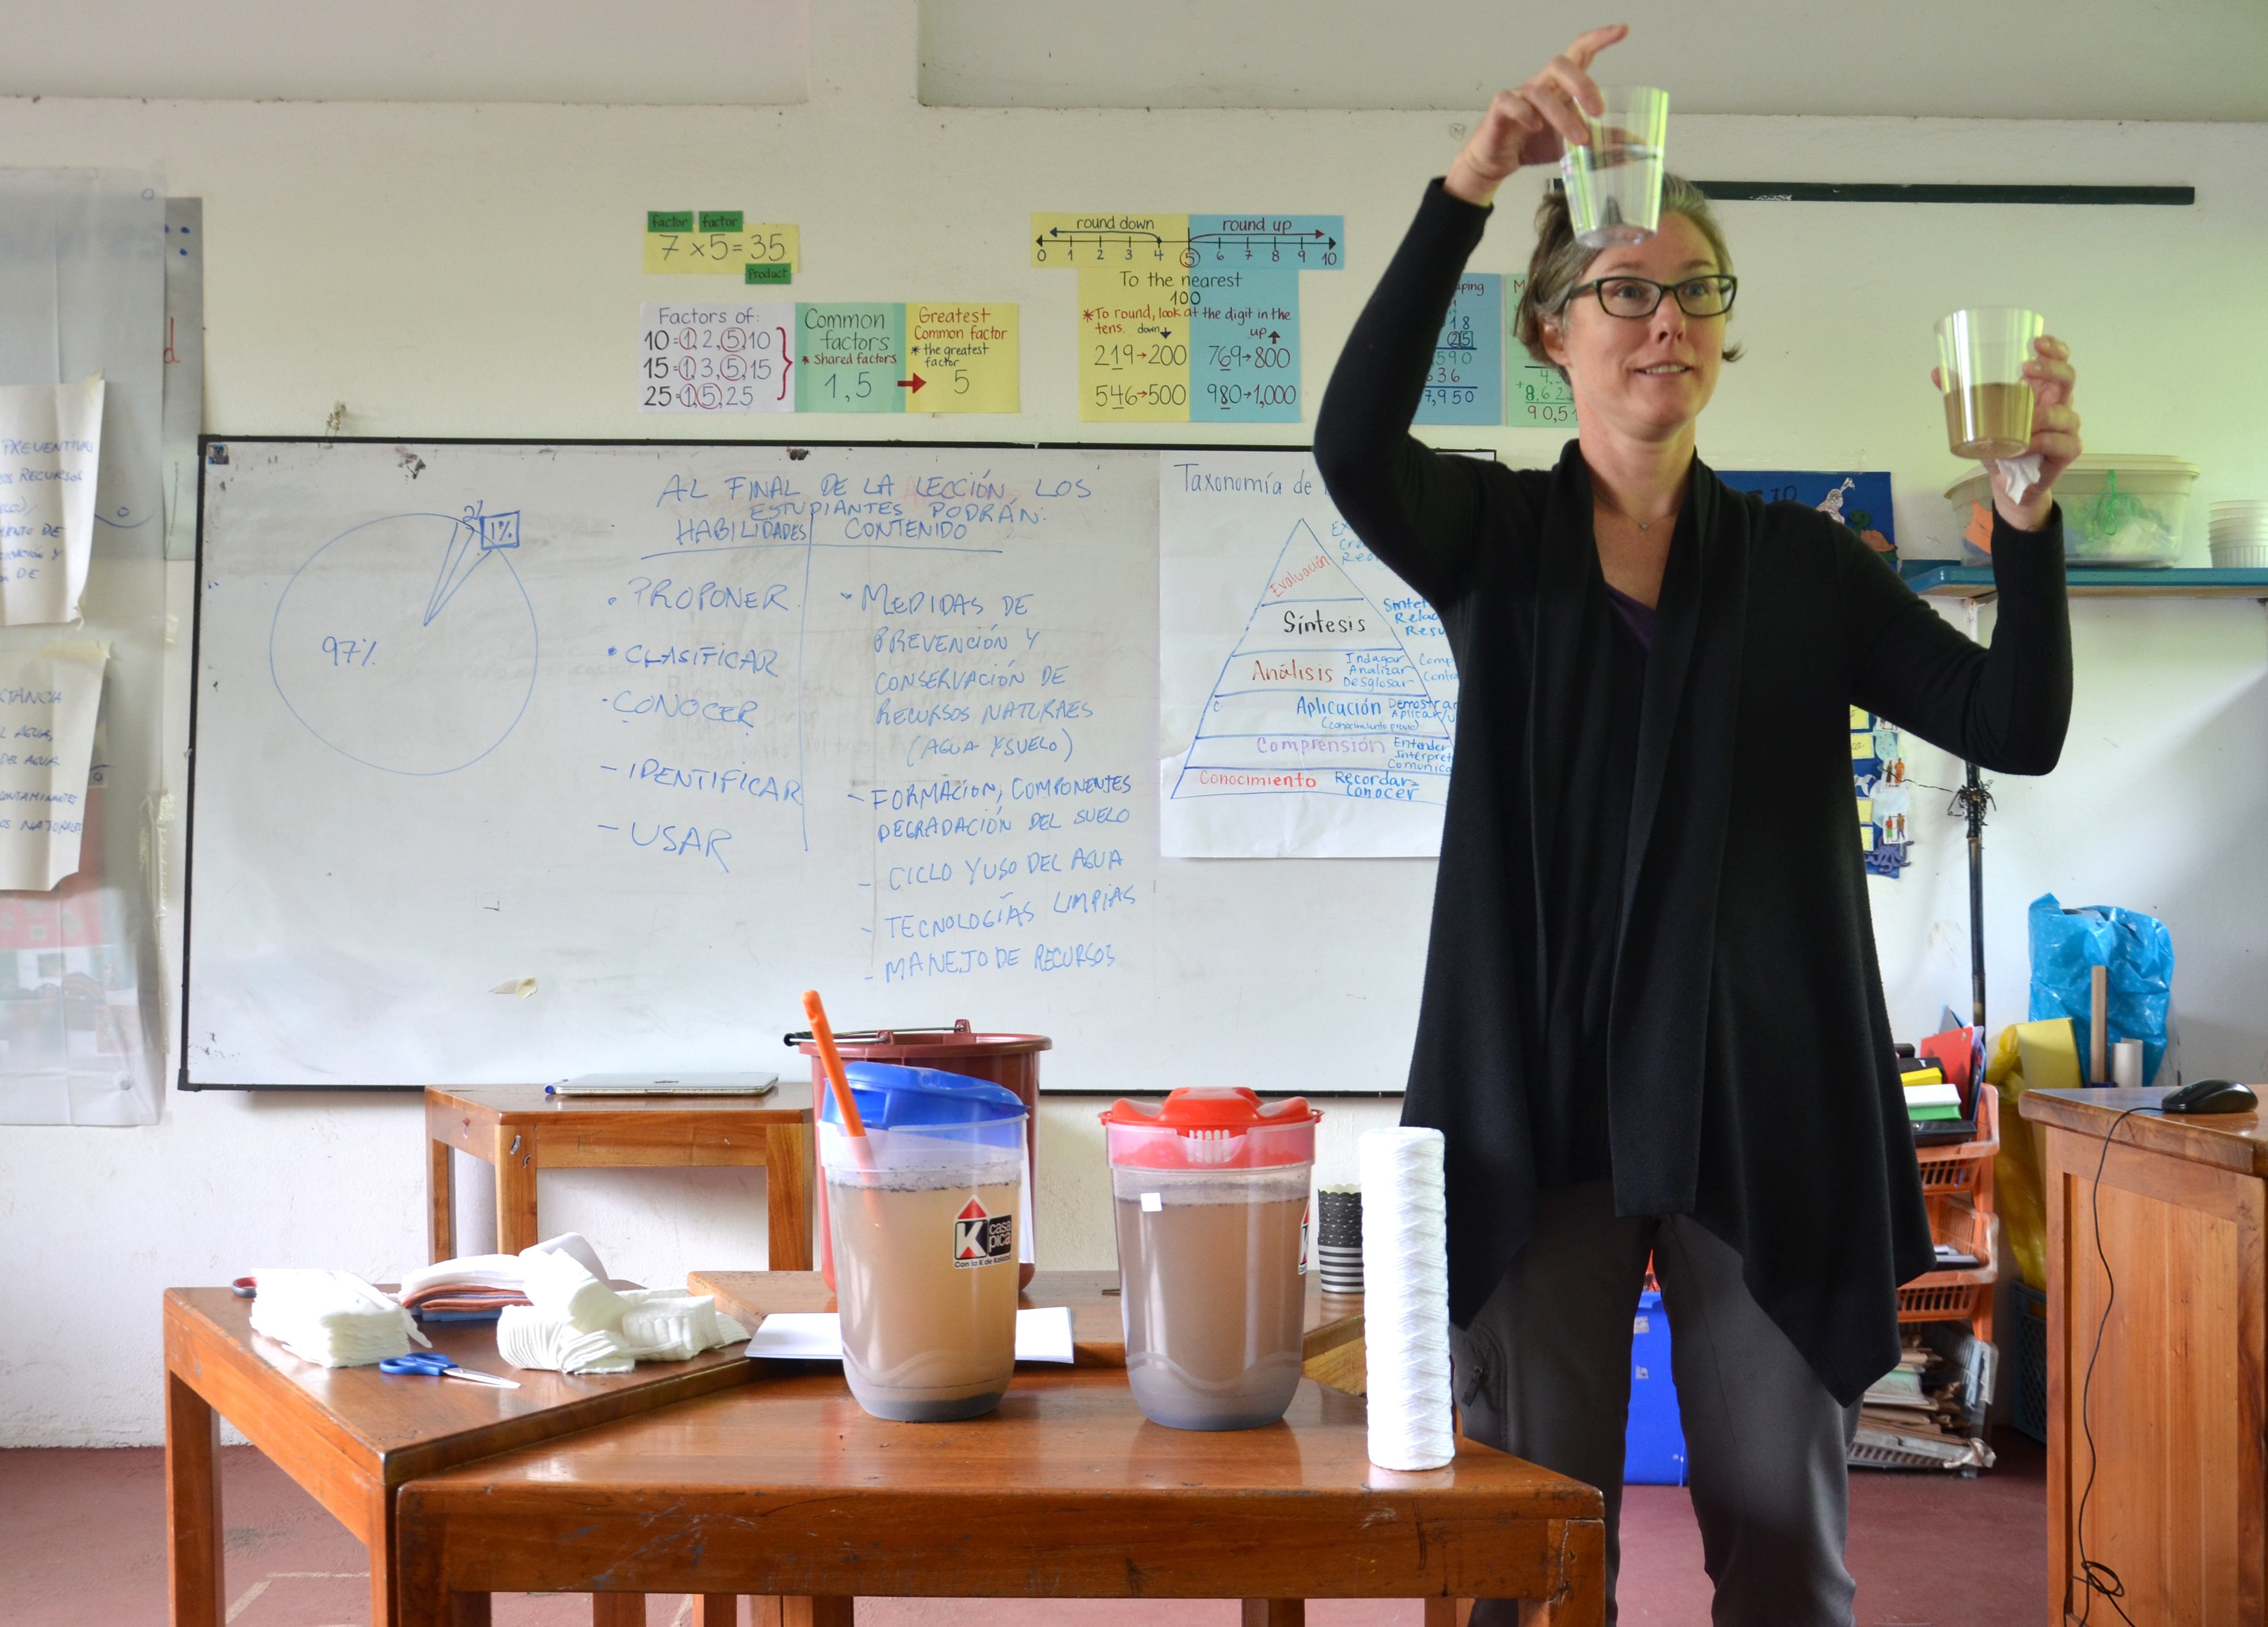 KC Busch displays the result of a water filtration experiment in the Galapagos Islands